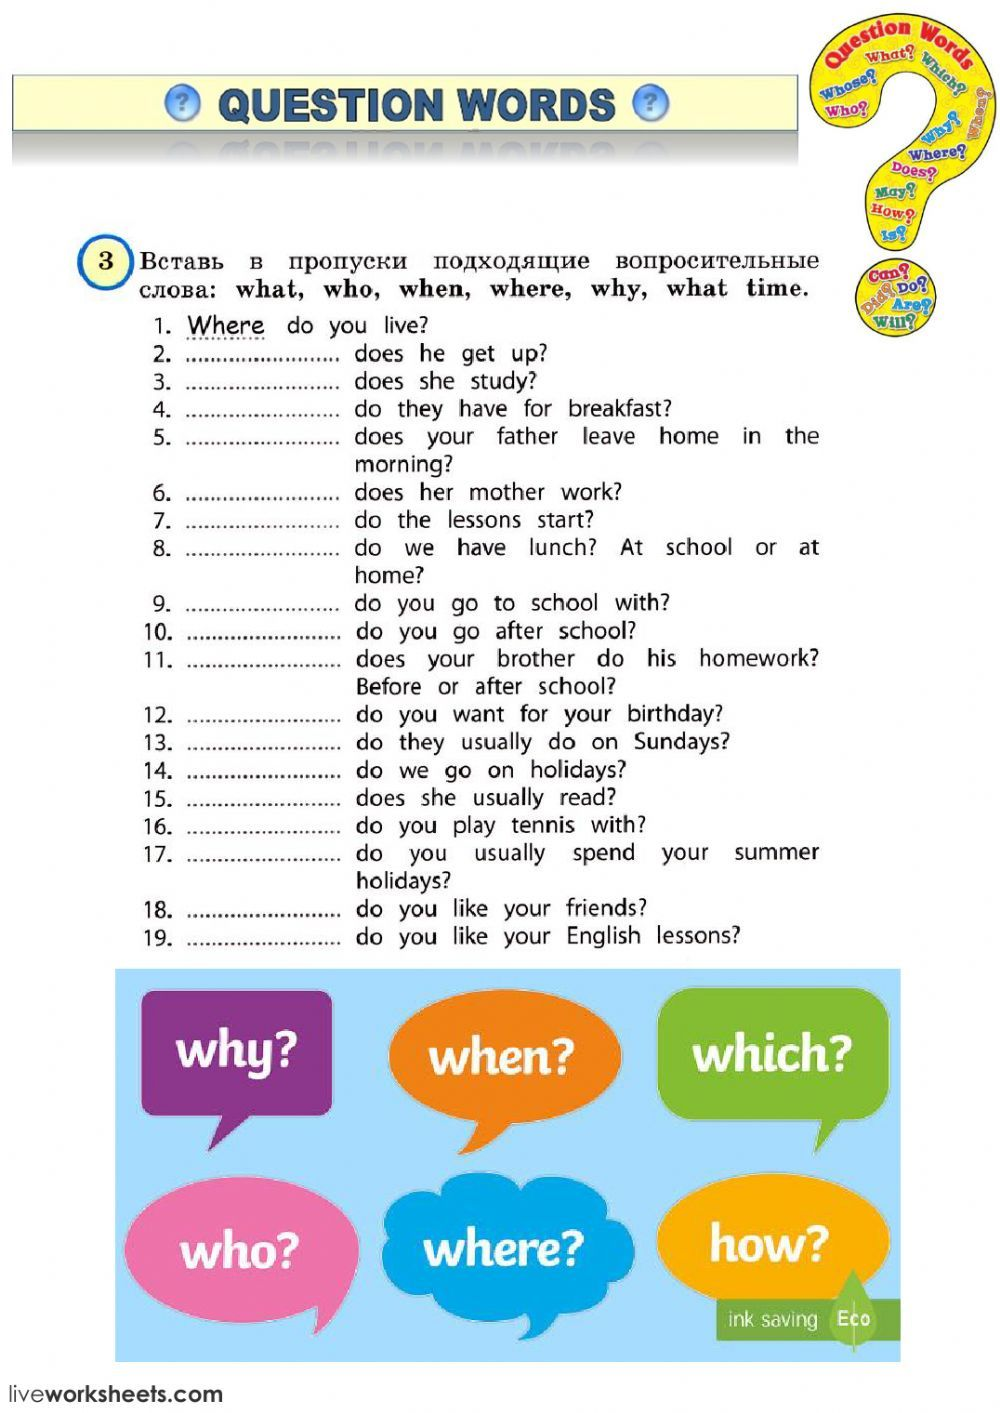 Question Words Interactive And Downloadable Worksheet You Can Do The Exercises Online Or Download Th This Or That Questions English As A Second Language Words